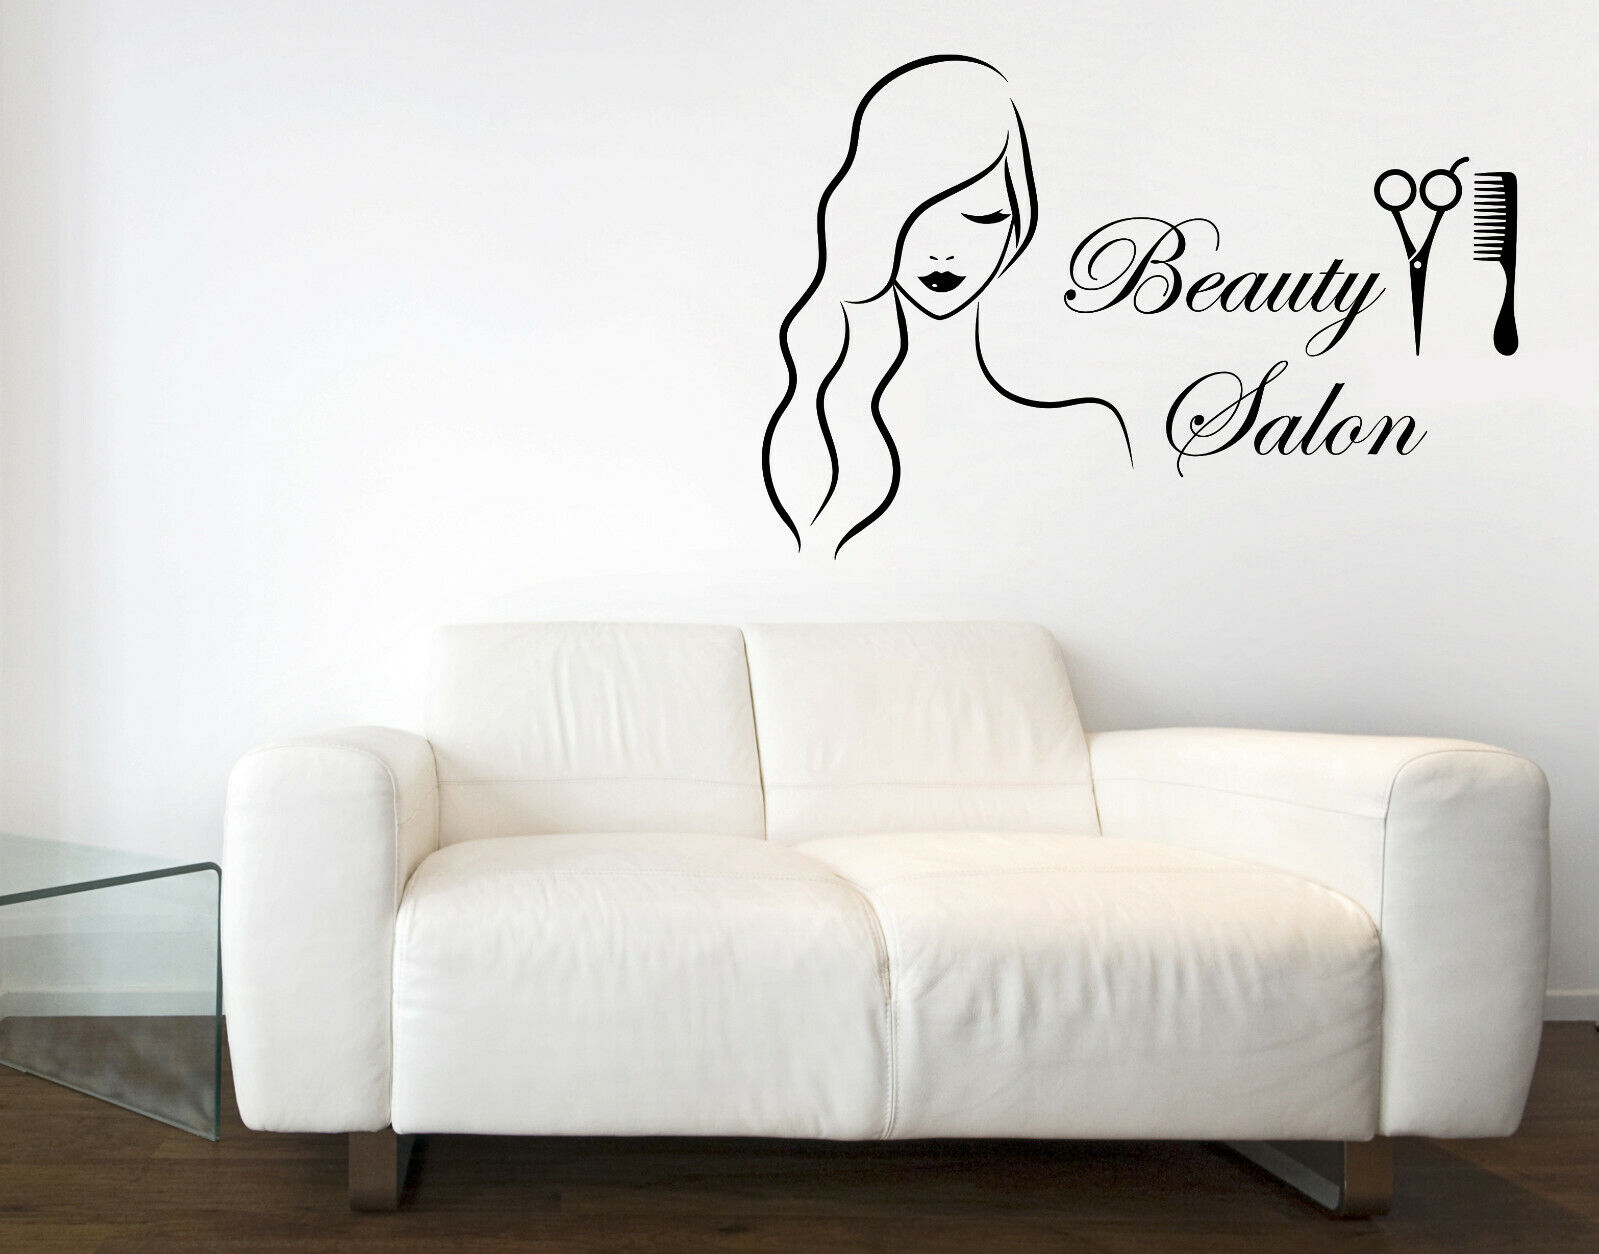 Wall Vinyl Decal Beautiful Woman Beauty Salon Sign with Barber Tools (n1069)